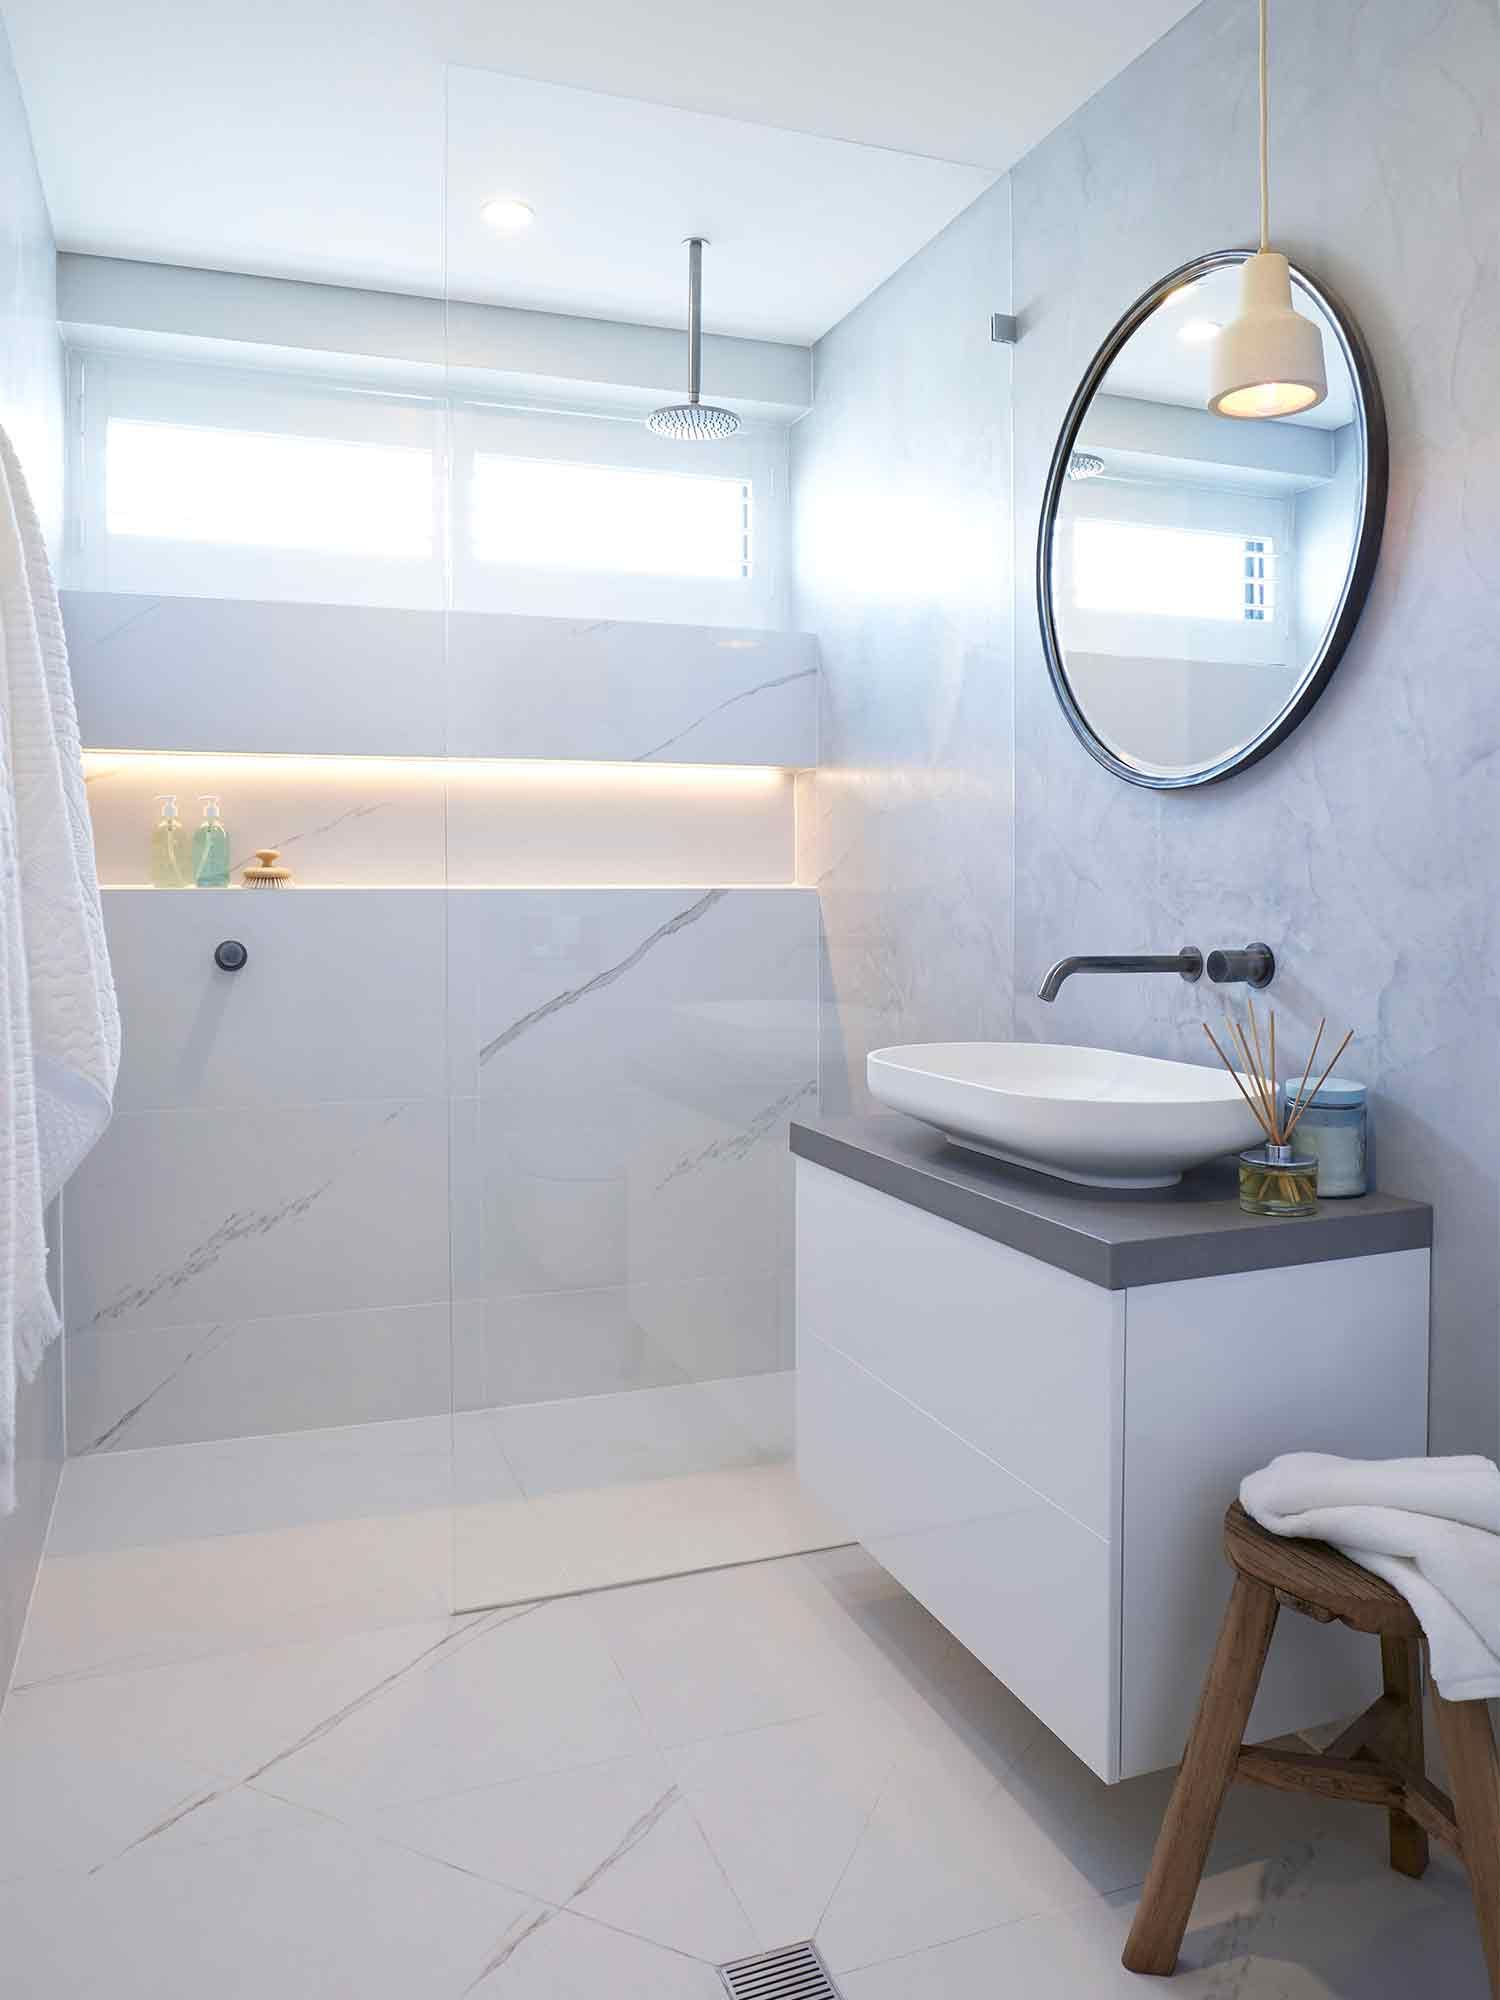 Small ensuite design ideas | Shower recess, Spaces and House